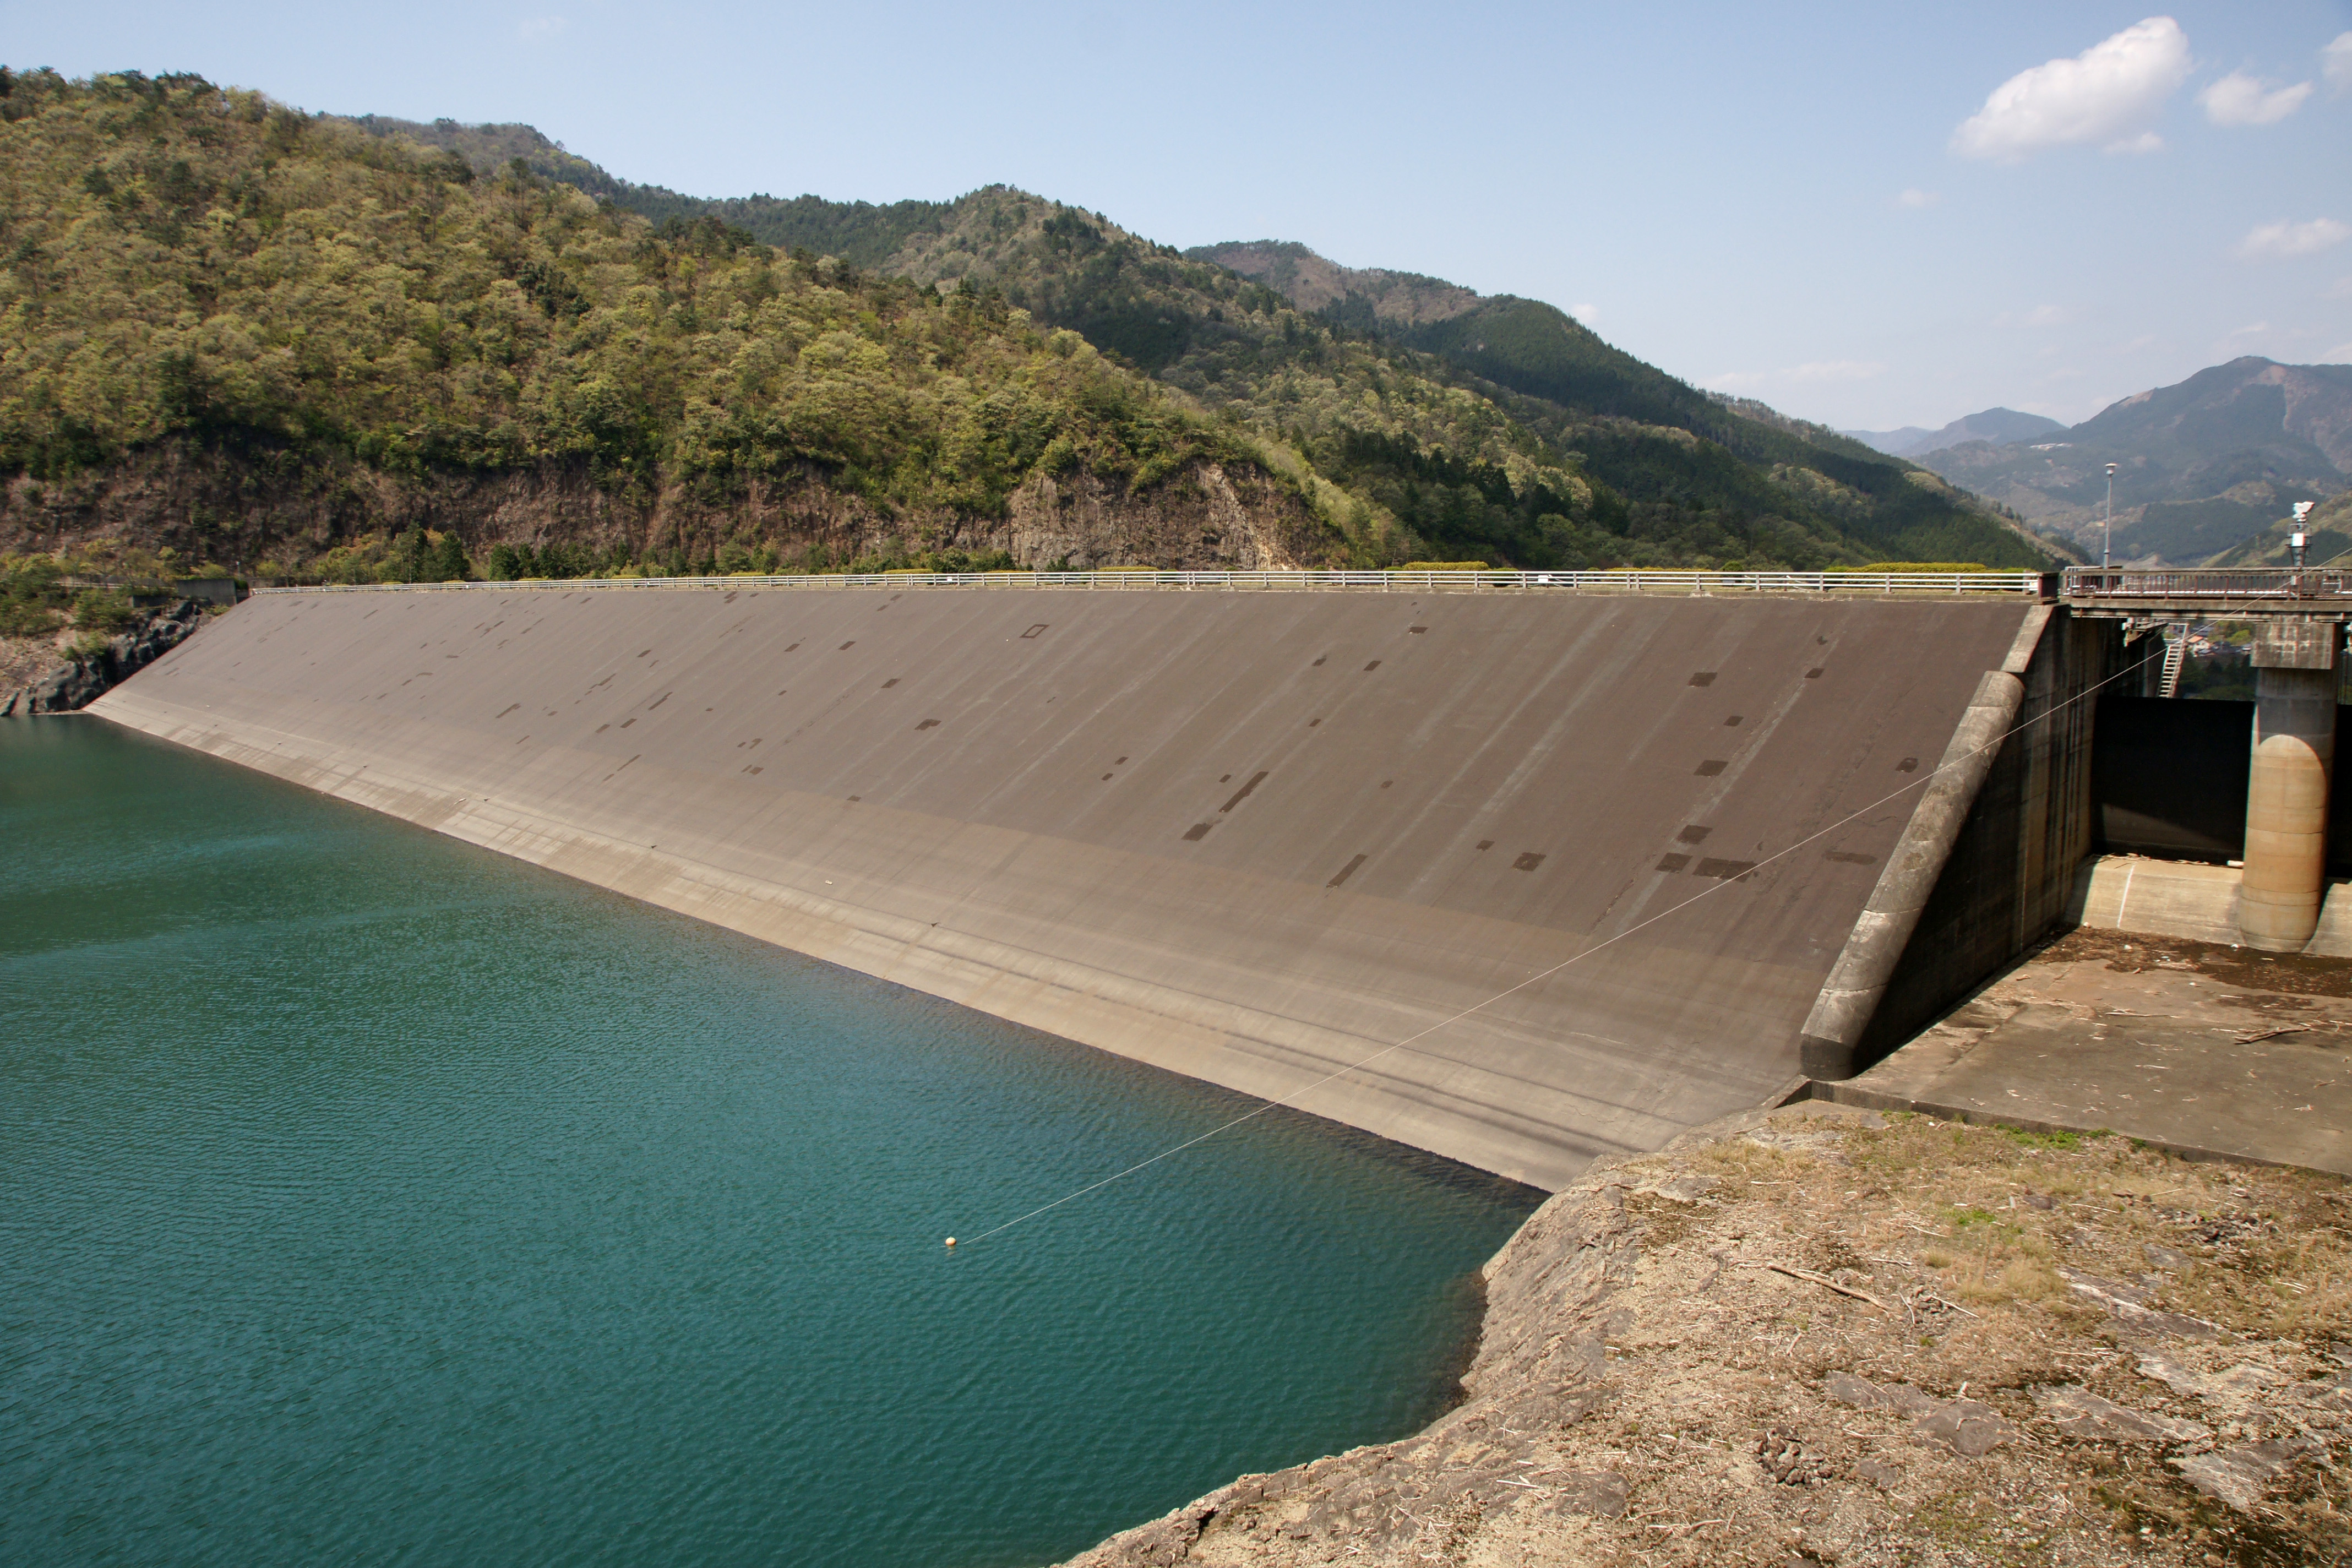 What are the causes of failure of earthen dams?